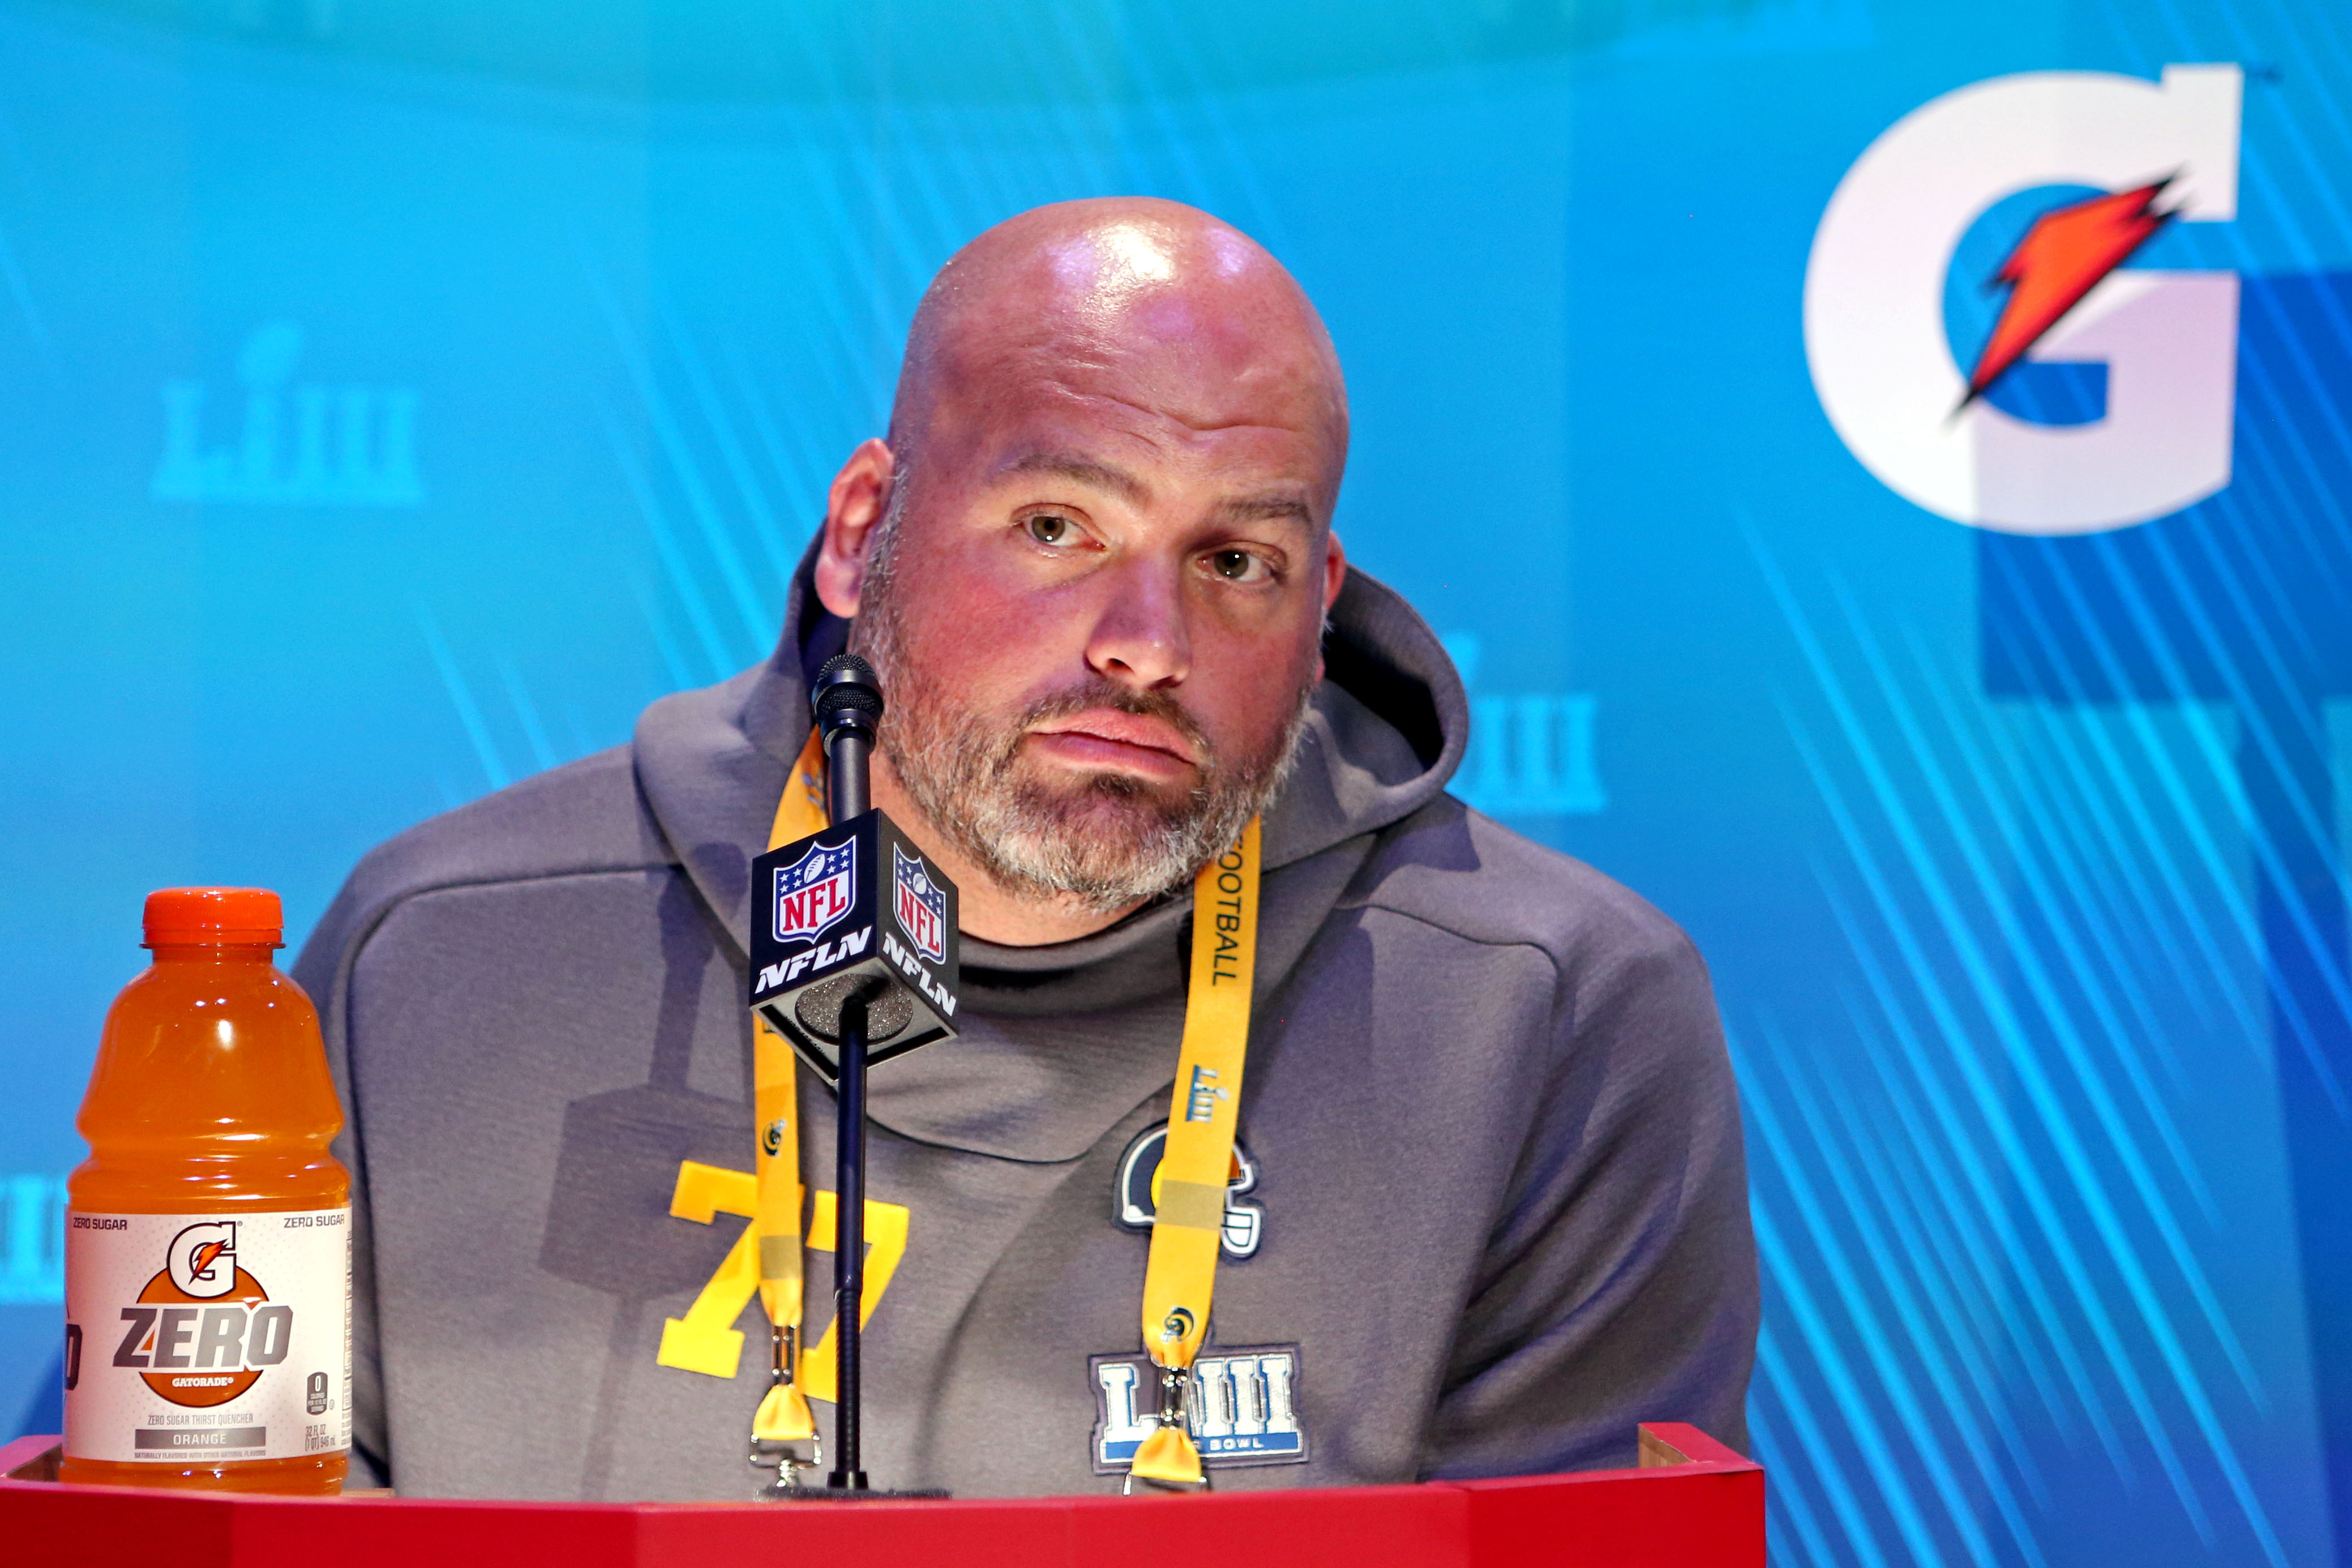 Andrew Whitworth laments Super Bowl loss, calls it team's 'worst game'